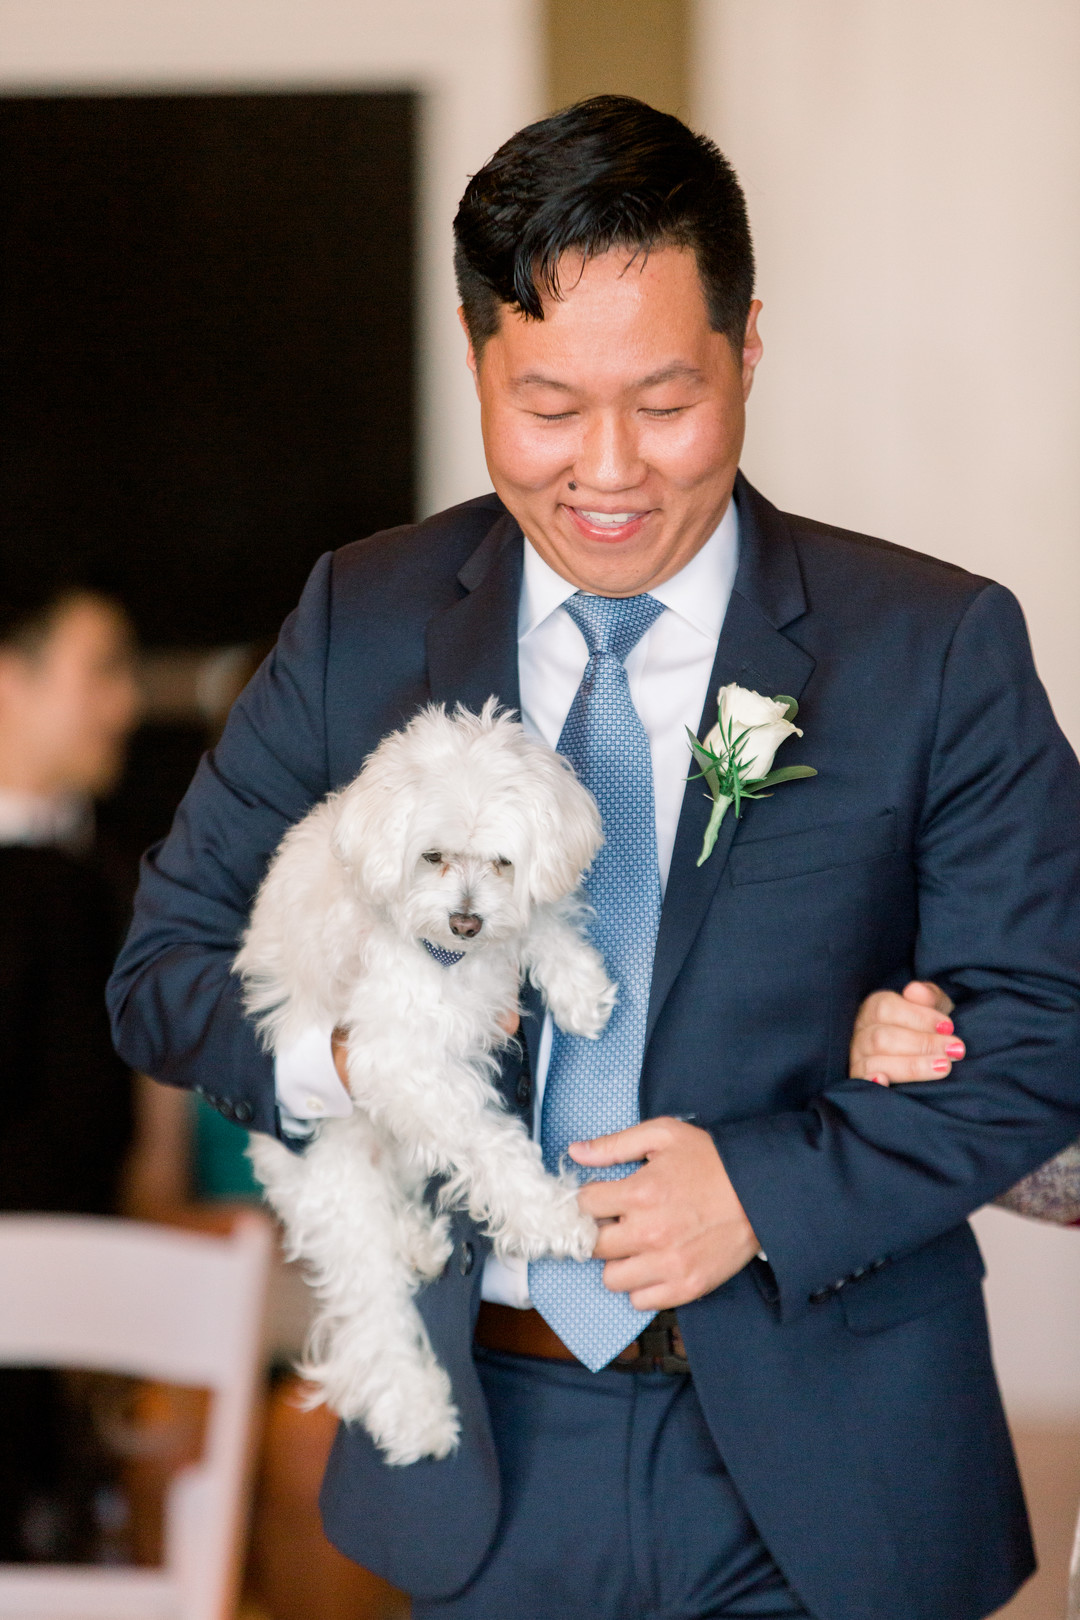 Dog as ring bearer: Spring wedding inspiration captured by Nicole Morisco Photography. Find more spring wedding ideas at CHItheeWED.com!